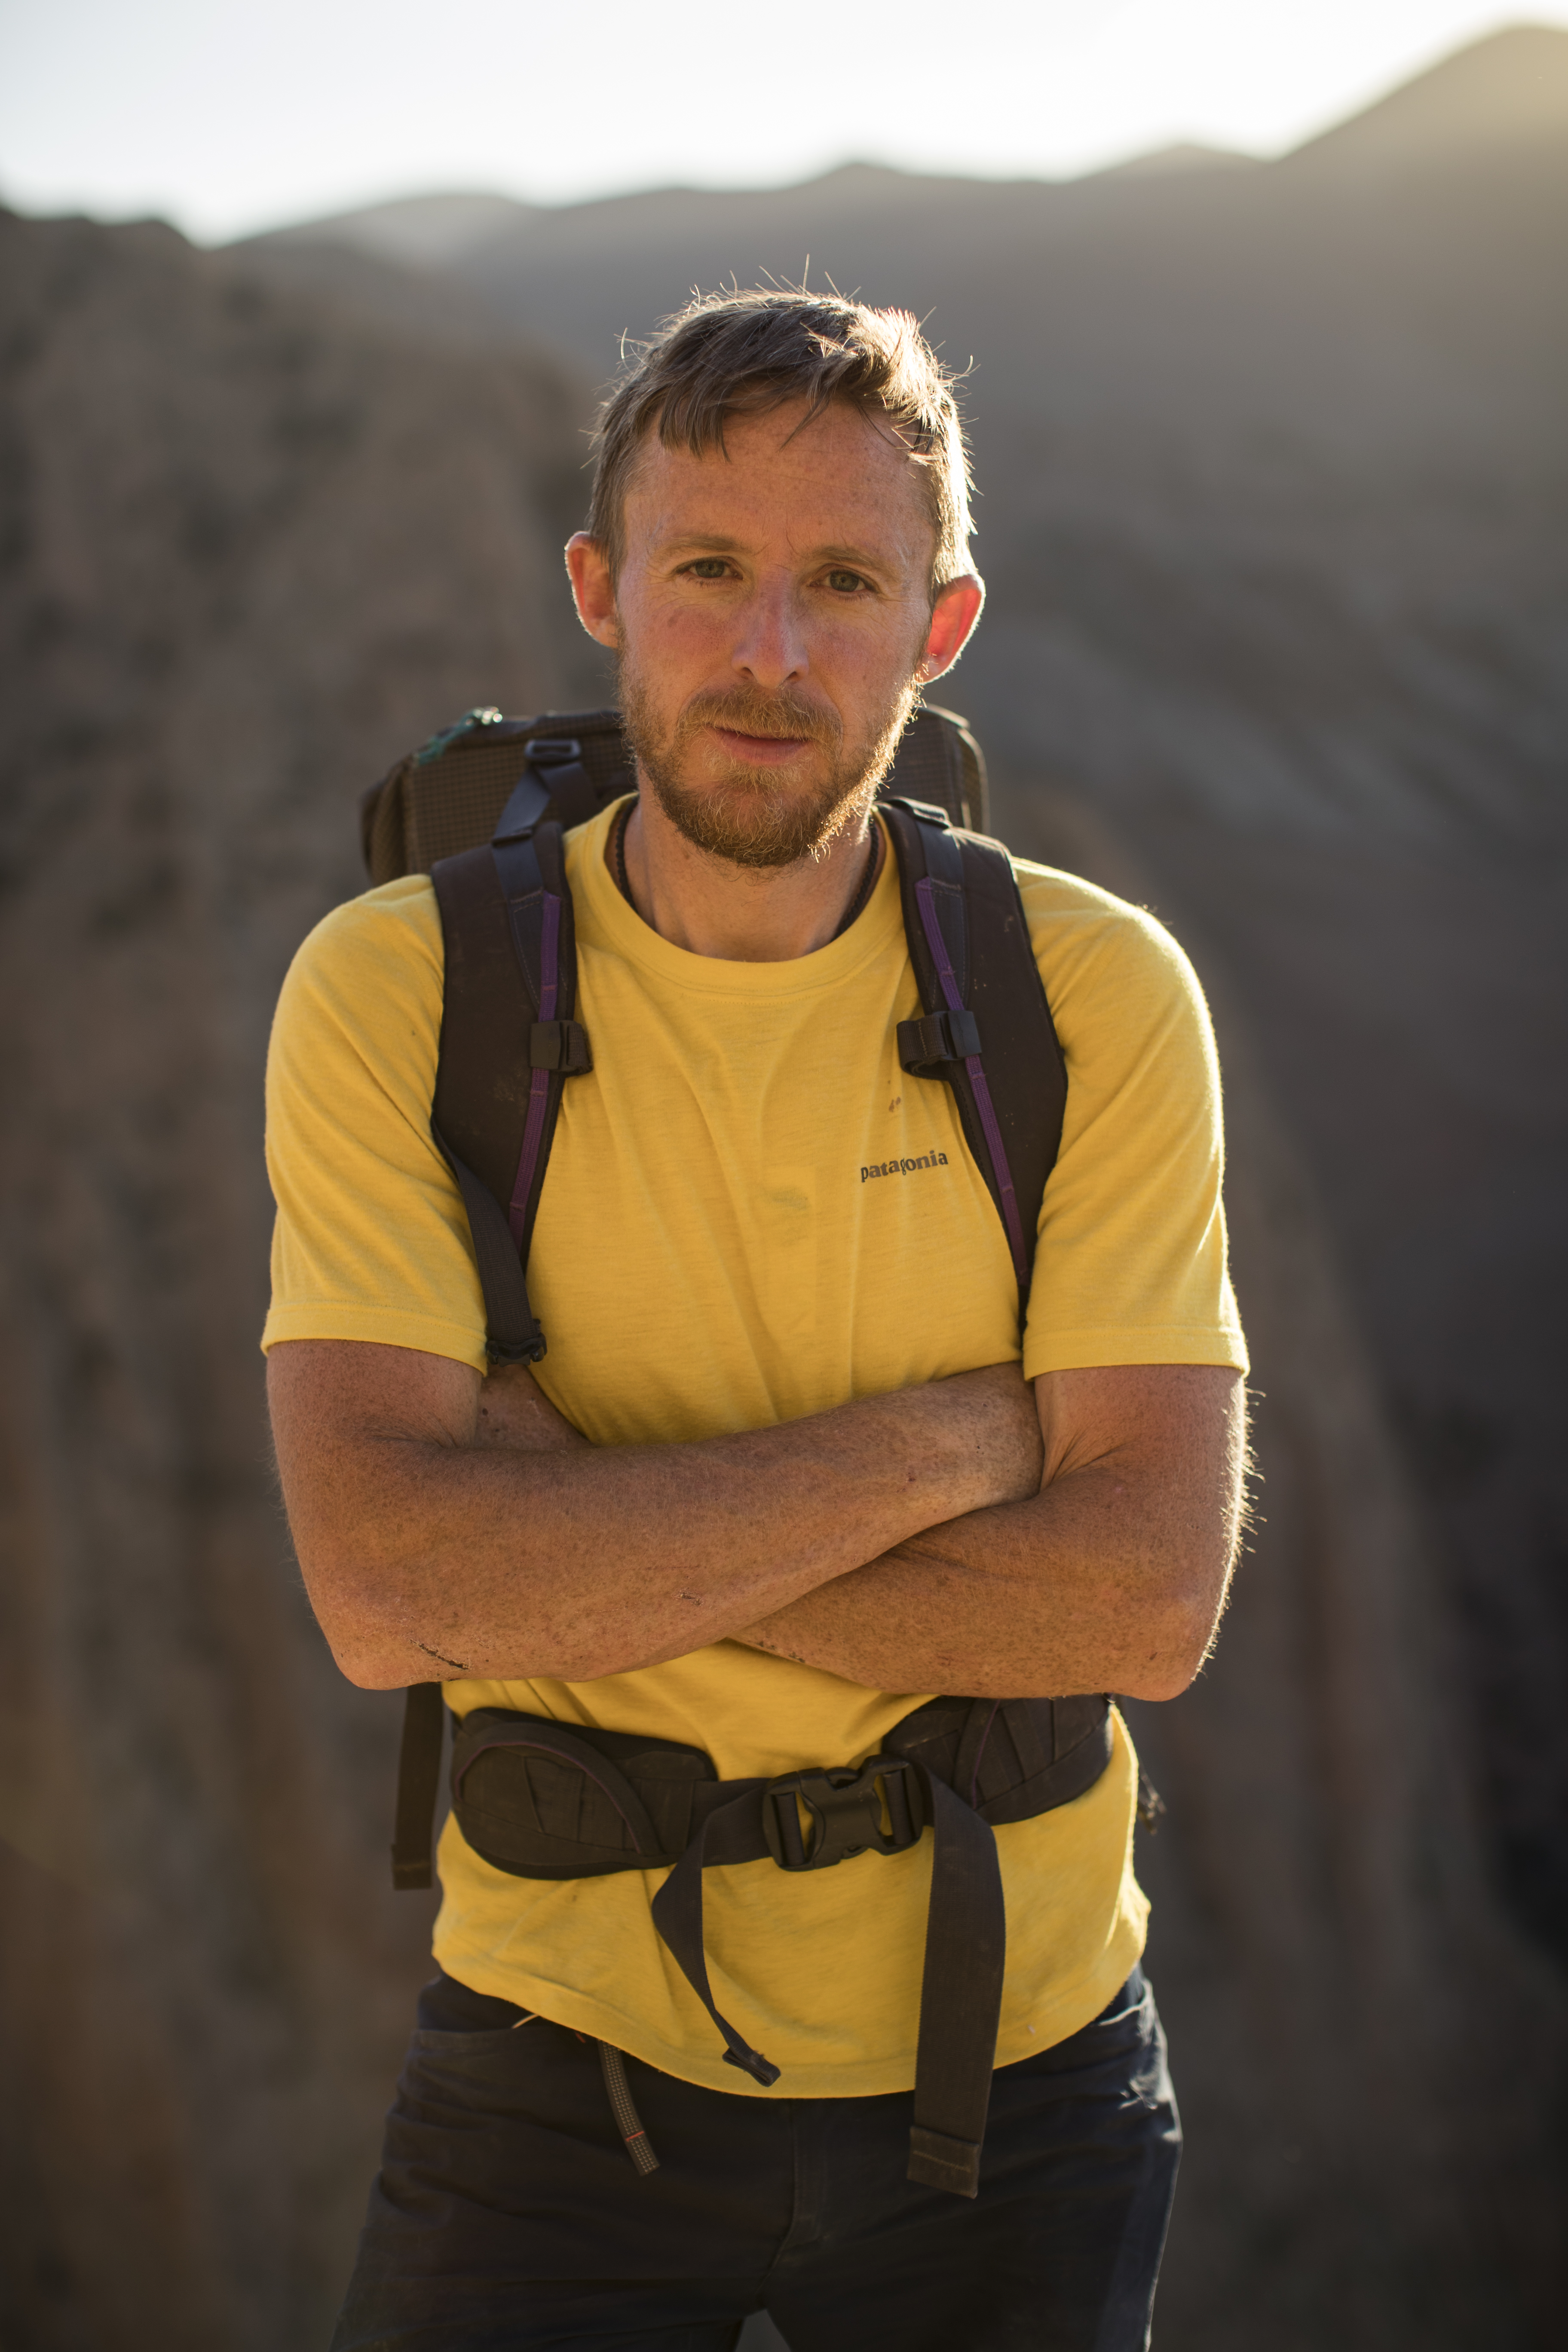 Tommy Caldwell is the author of The Push, which was released May 16. [Photo] Jimmy Chin